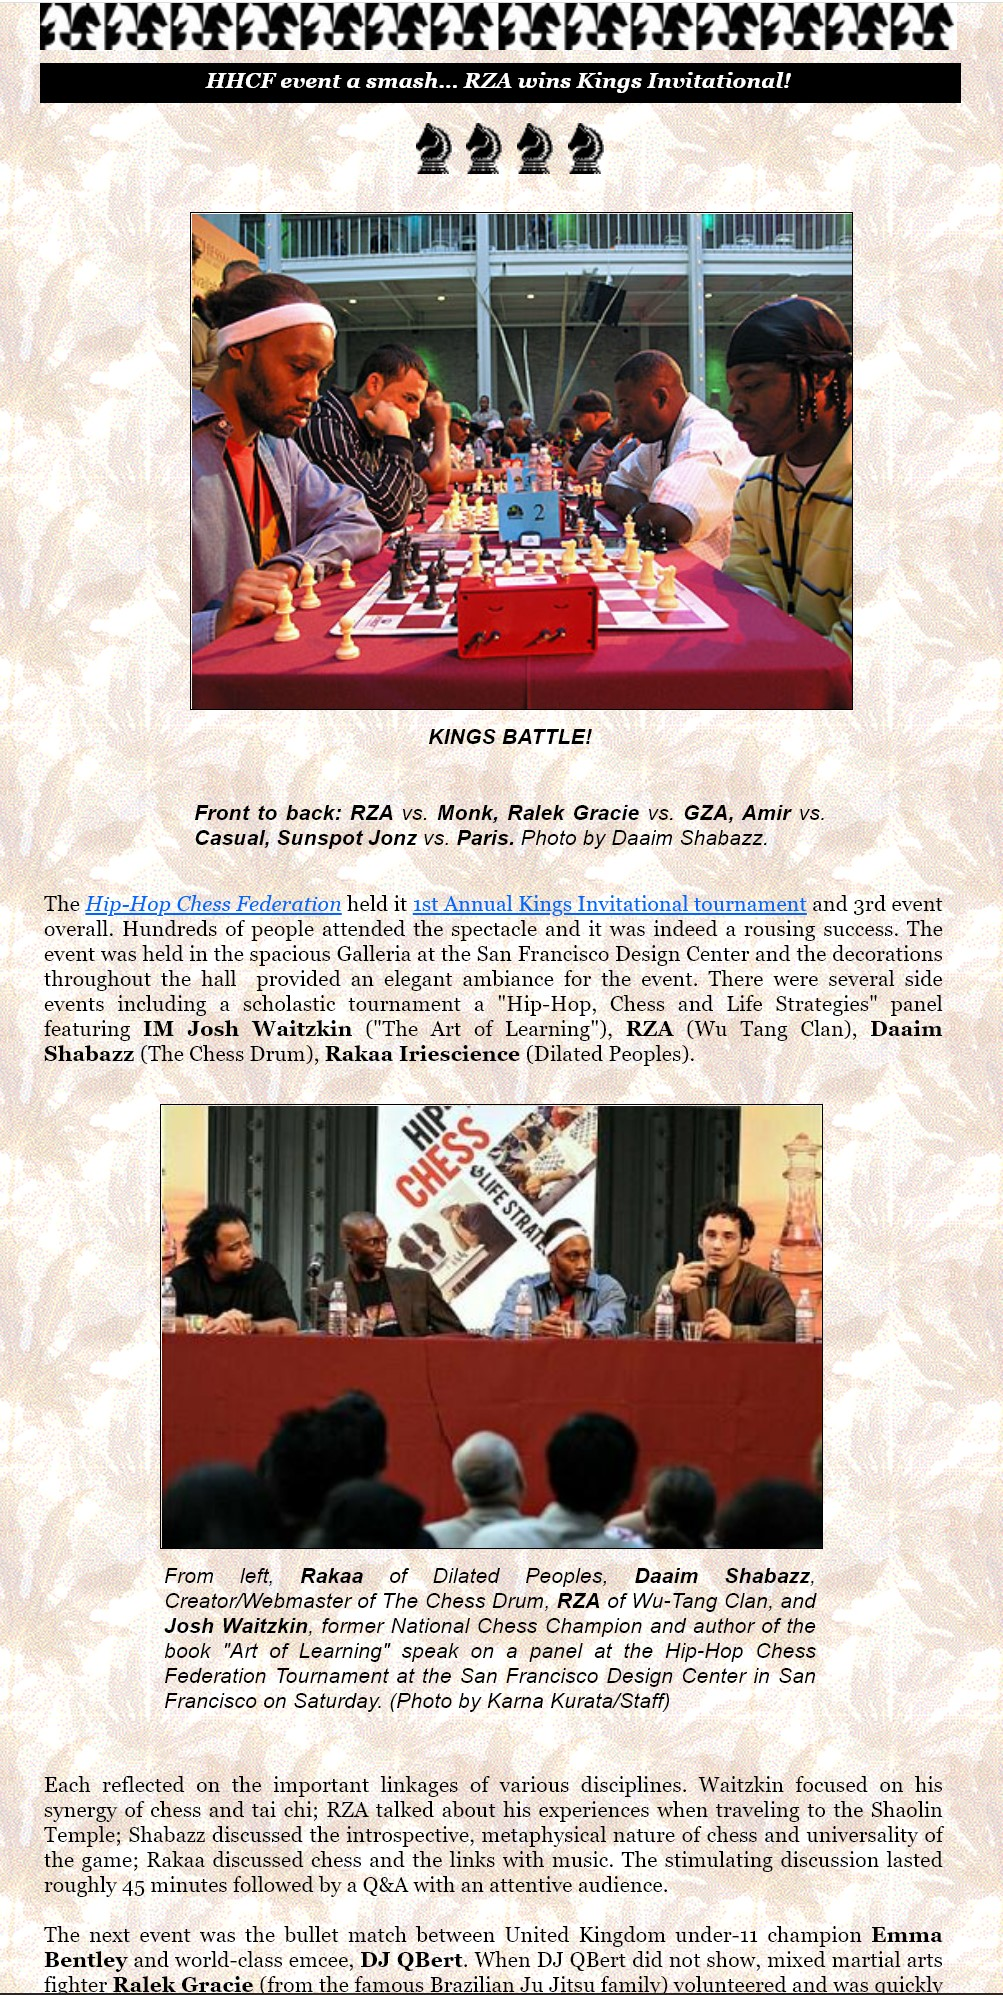 Hip-Hop Chess Federation King's Invitational & Panel Discussion